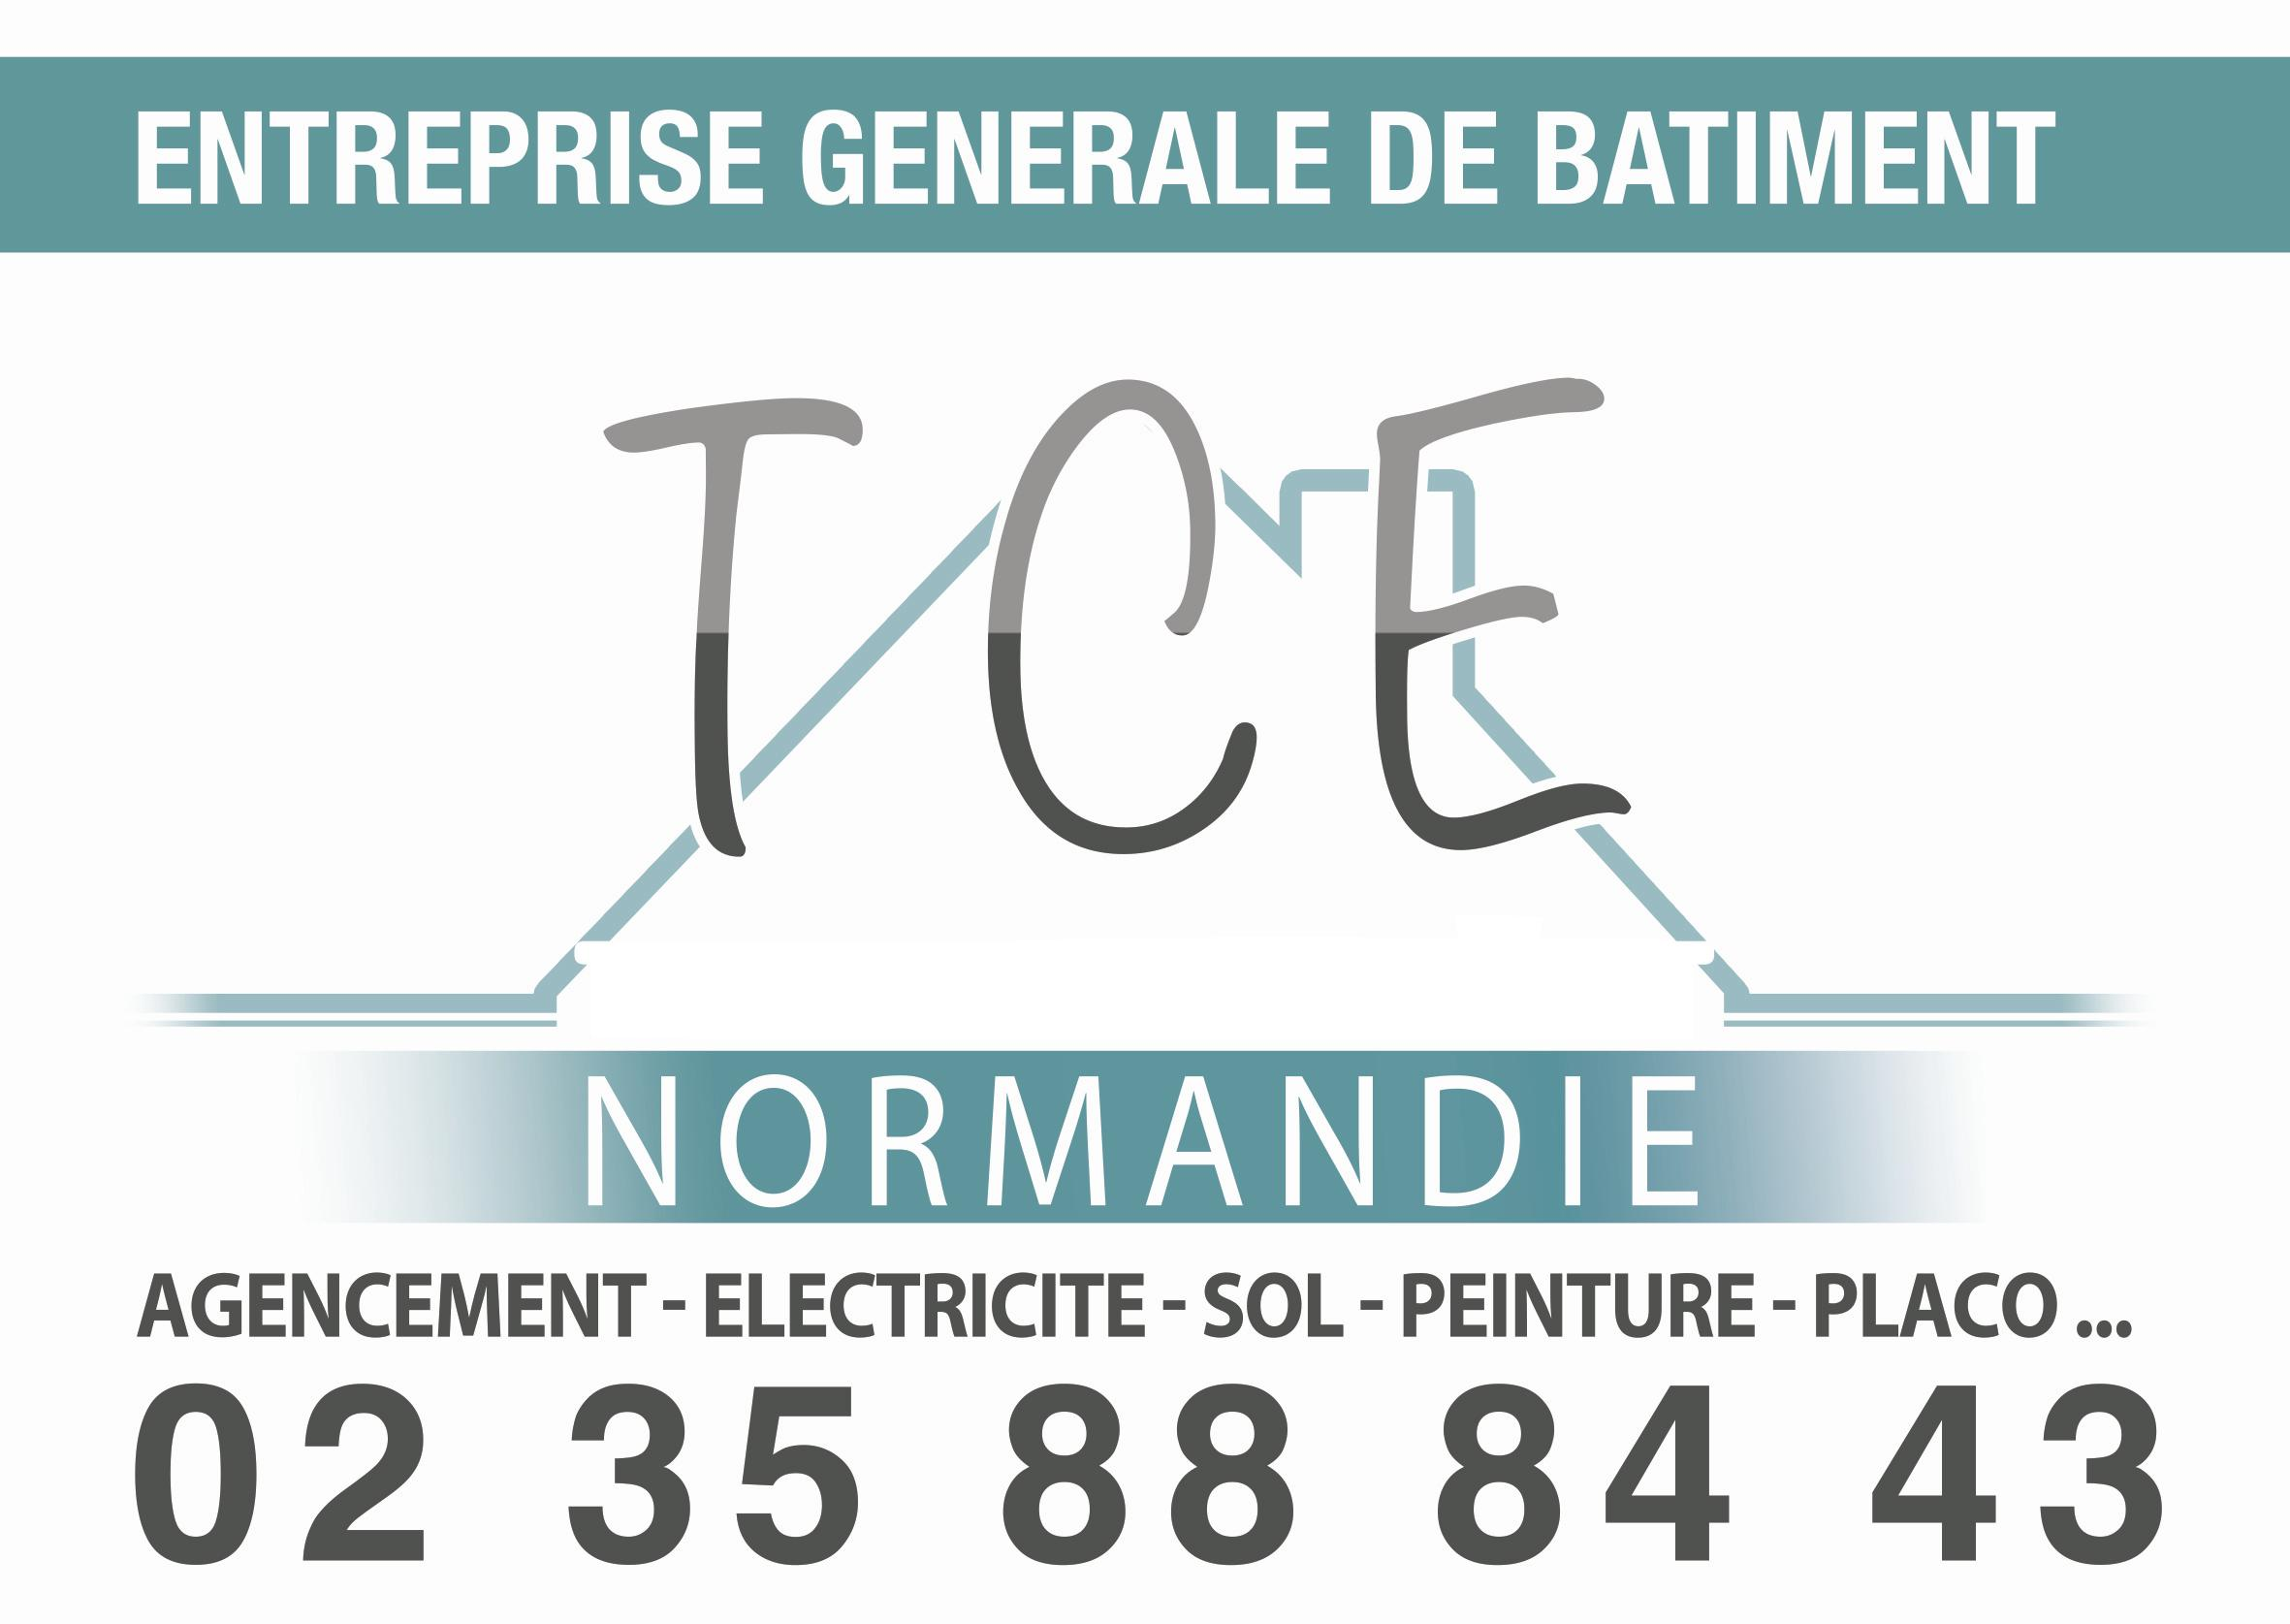 tce normandie votre partenaire travaux tce normandie entreprise g n rale de batiment. Black Bedroom Furniture Sets. Home Design Ideas